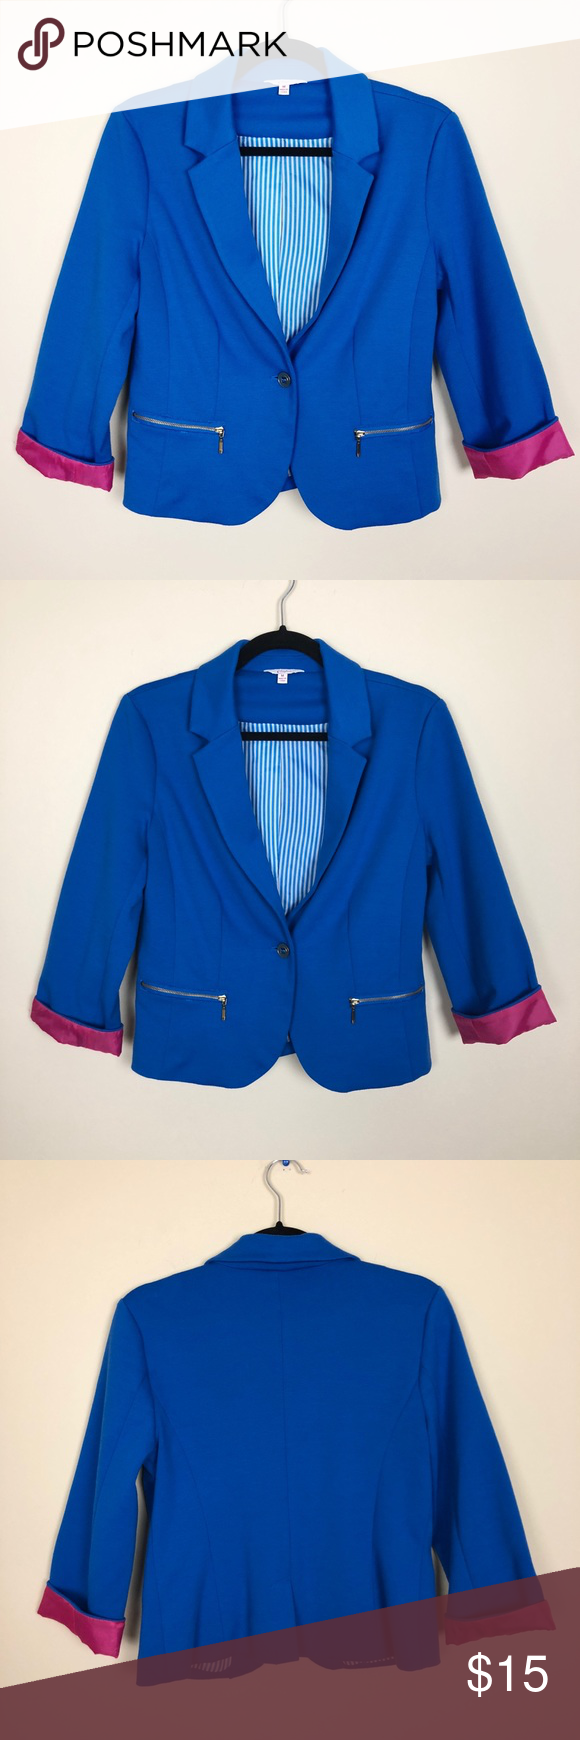 7564a7362ebc9 Candies   Blazer Blue blazer from Candies. Has pink cuffs that can be  flipped up or worn down. Great pre owned condition. Size medium Candie's  Jackets ...